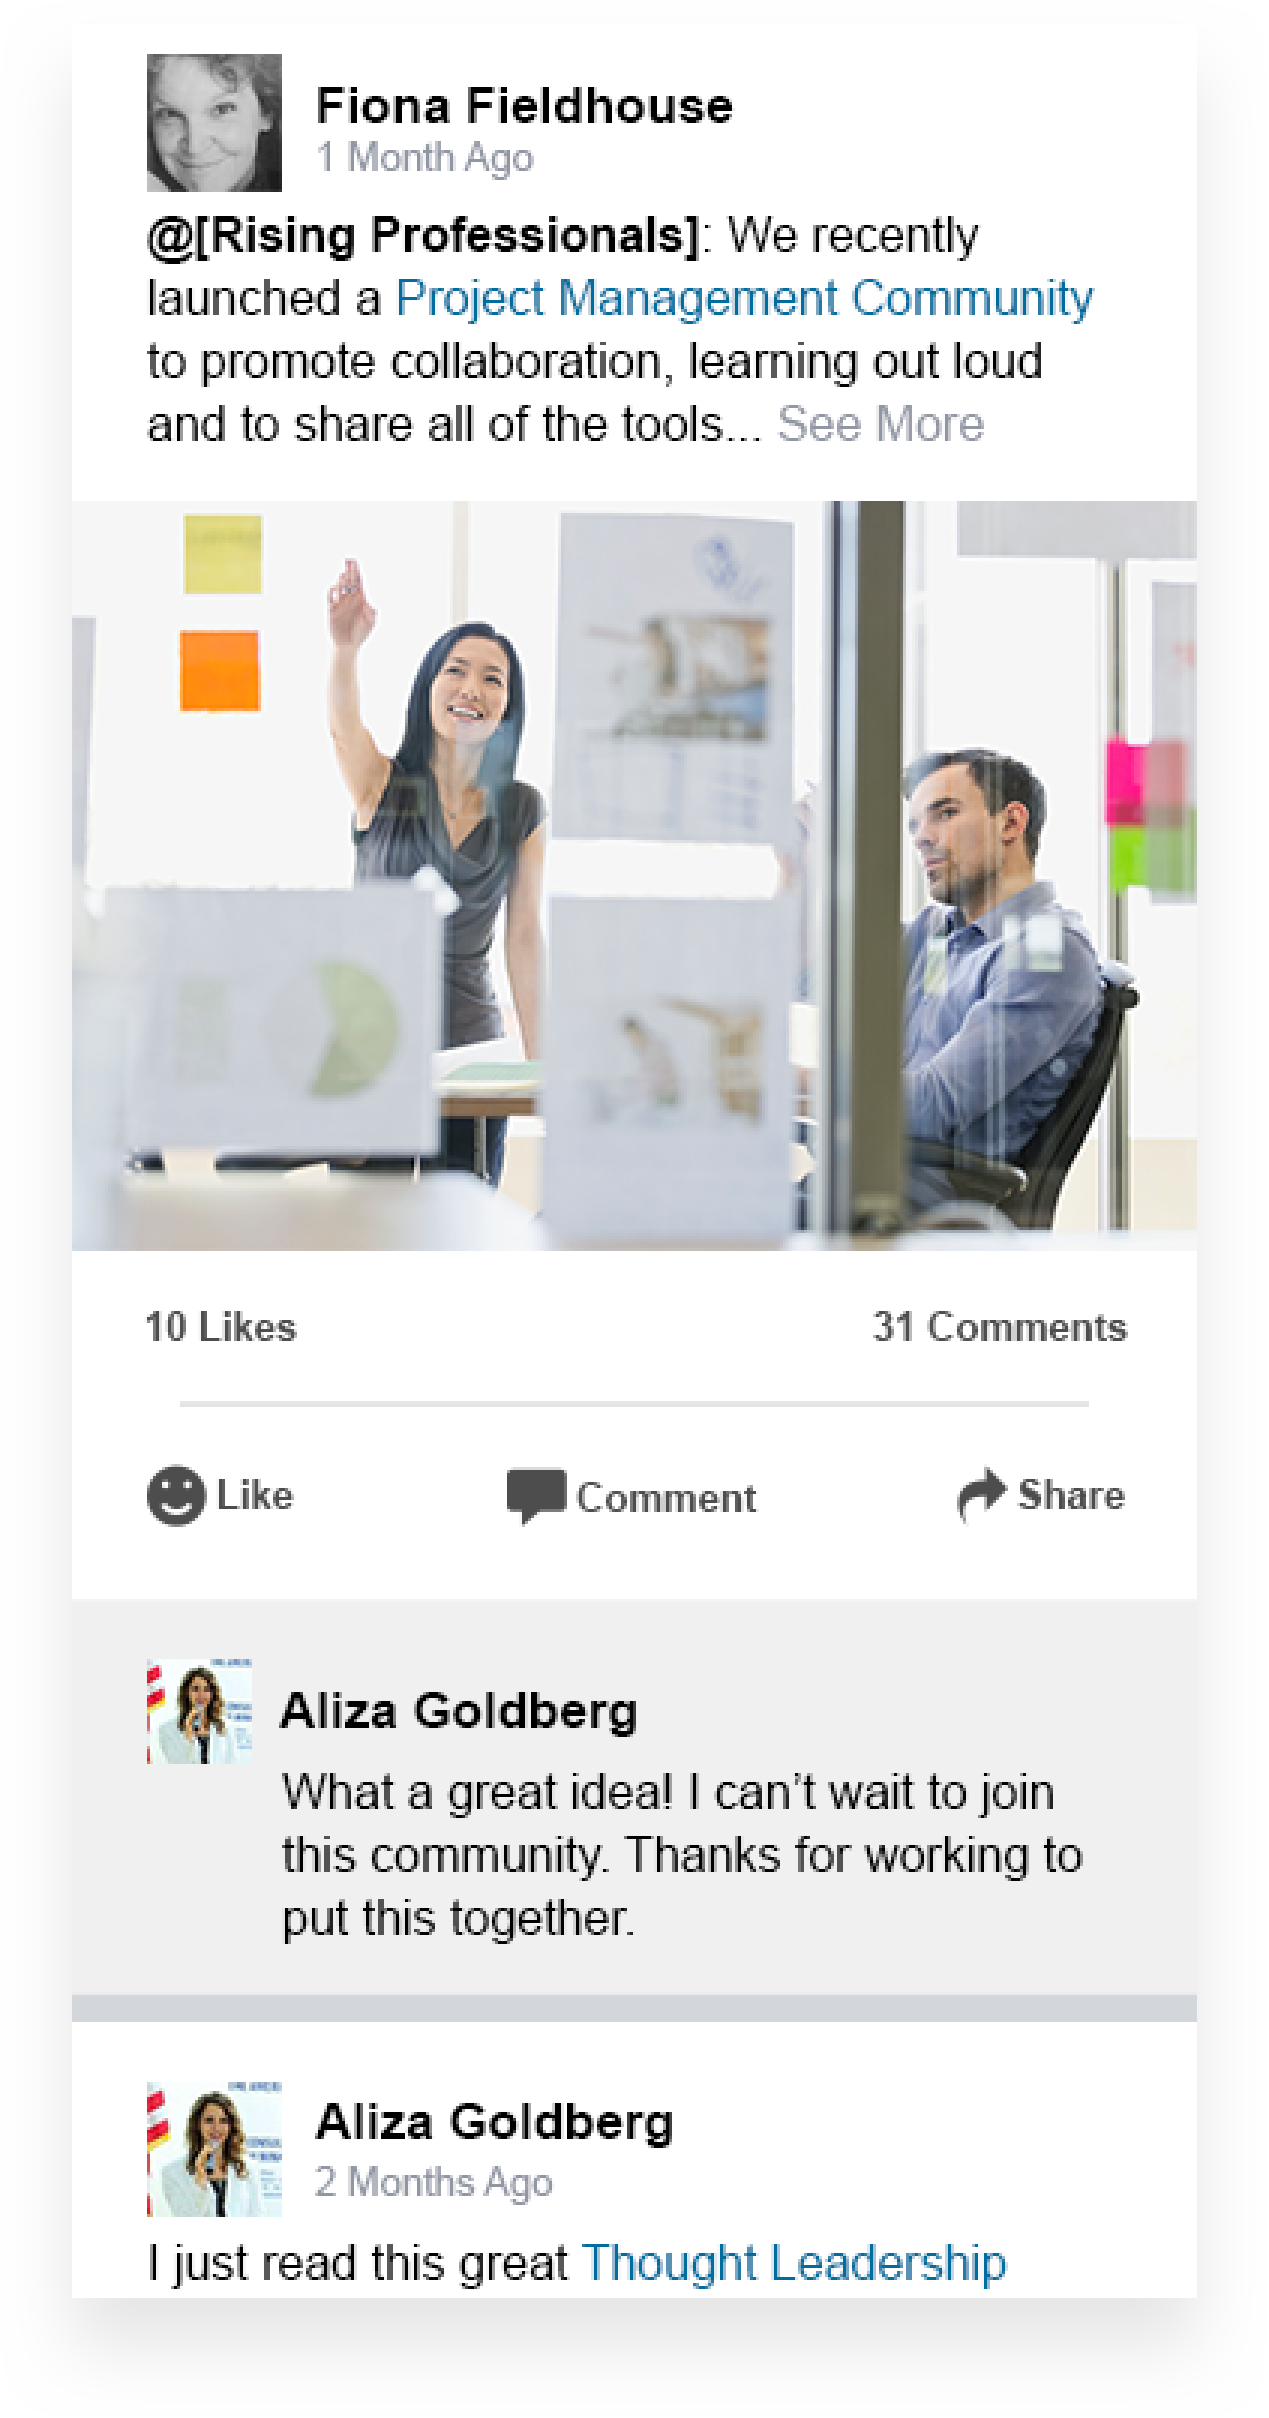 Image 4: a mid-fidelity mockup of a post with comments and likes.